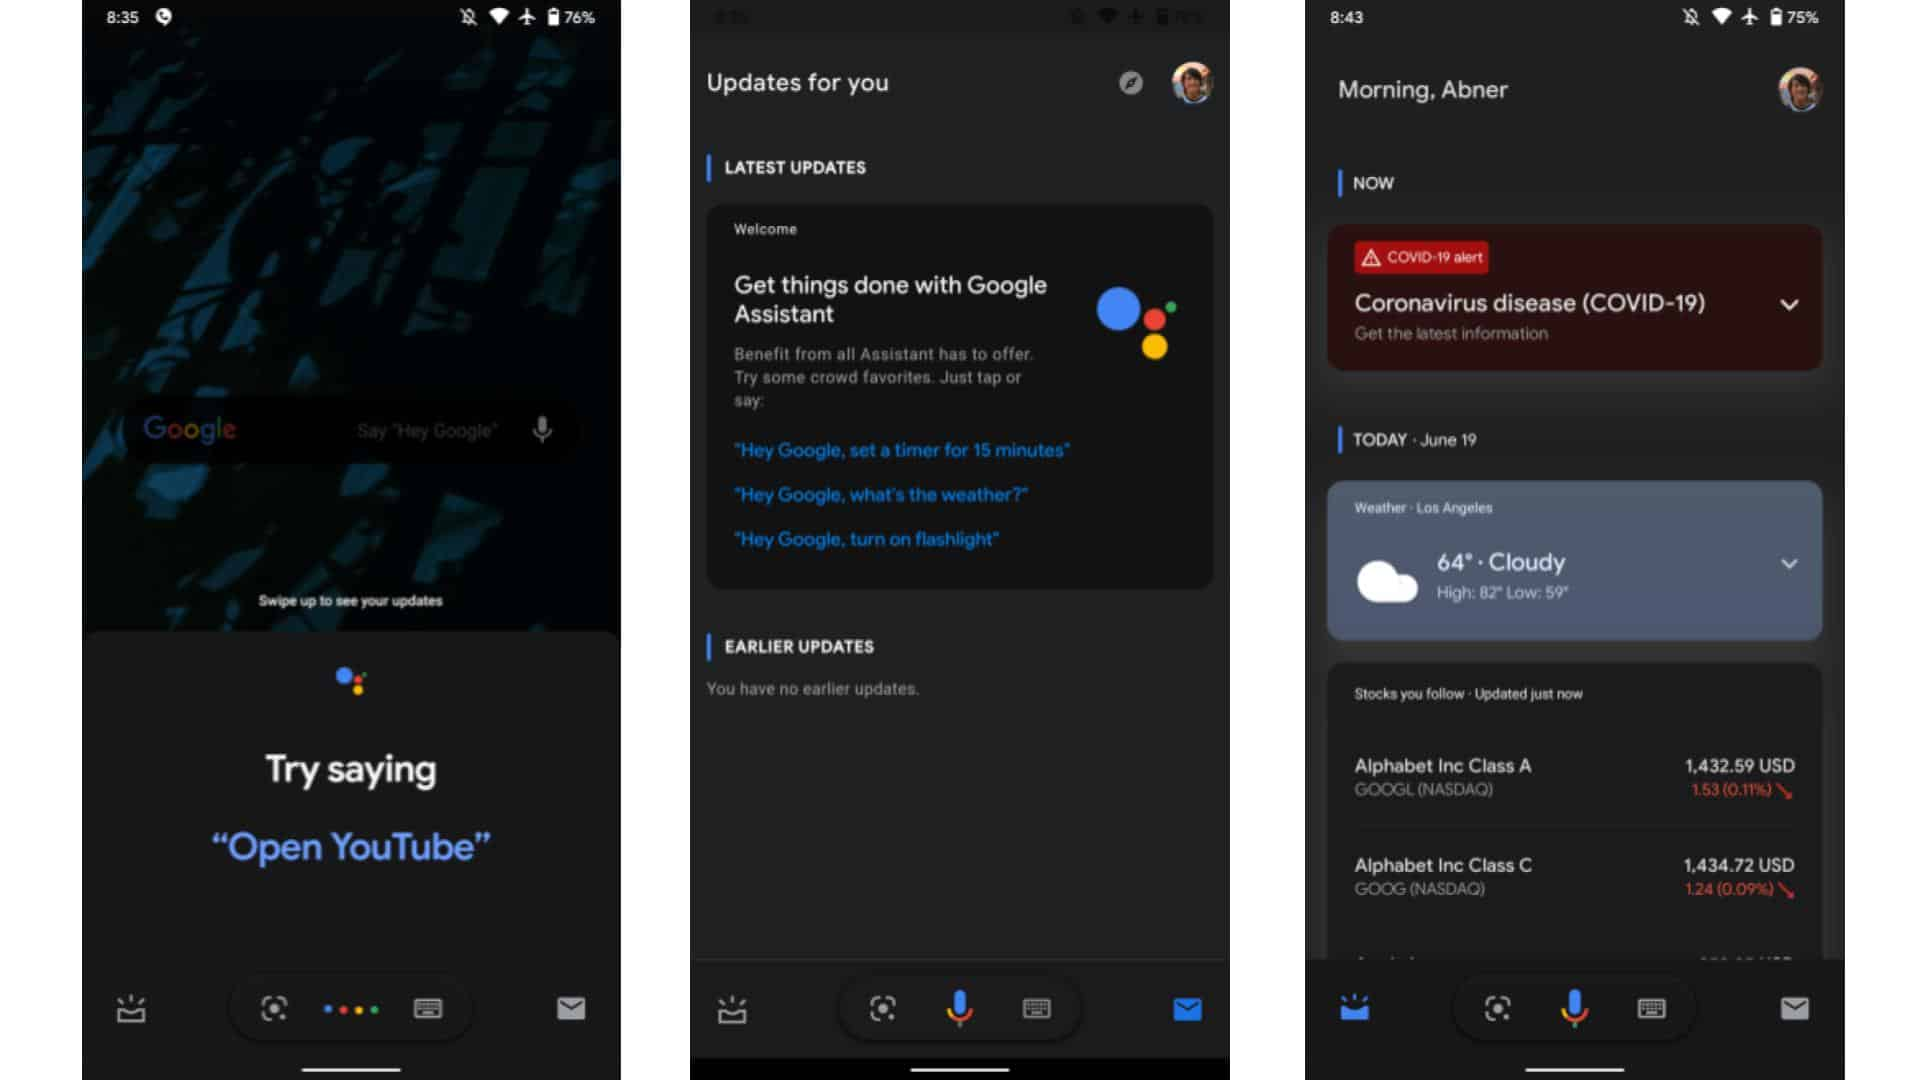 Updates for You Onboarding assistant test ui from 9to5Google